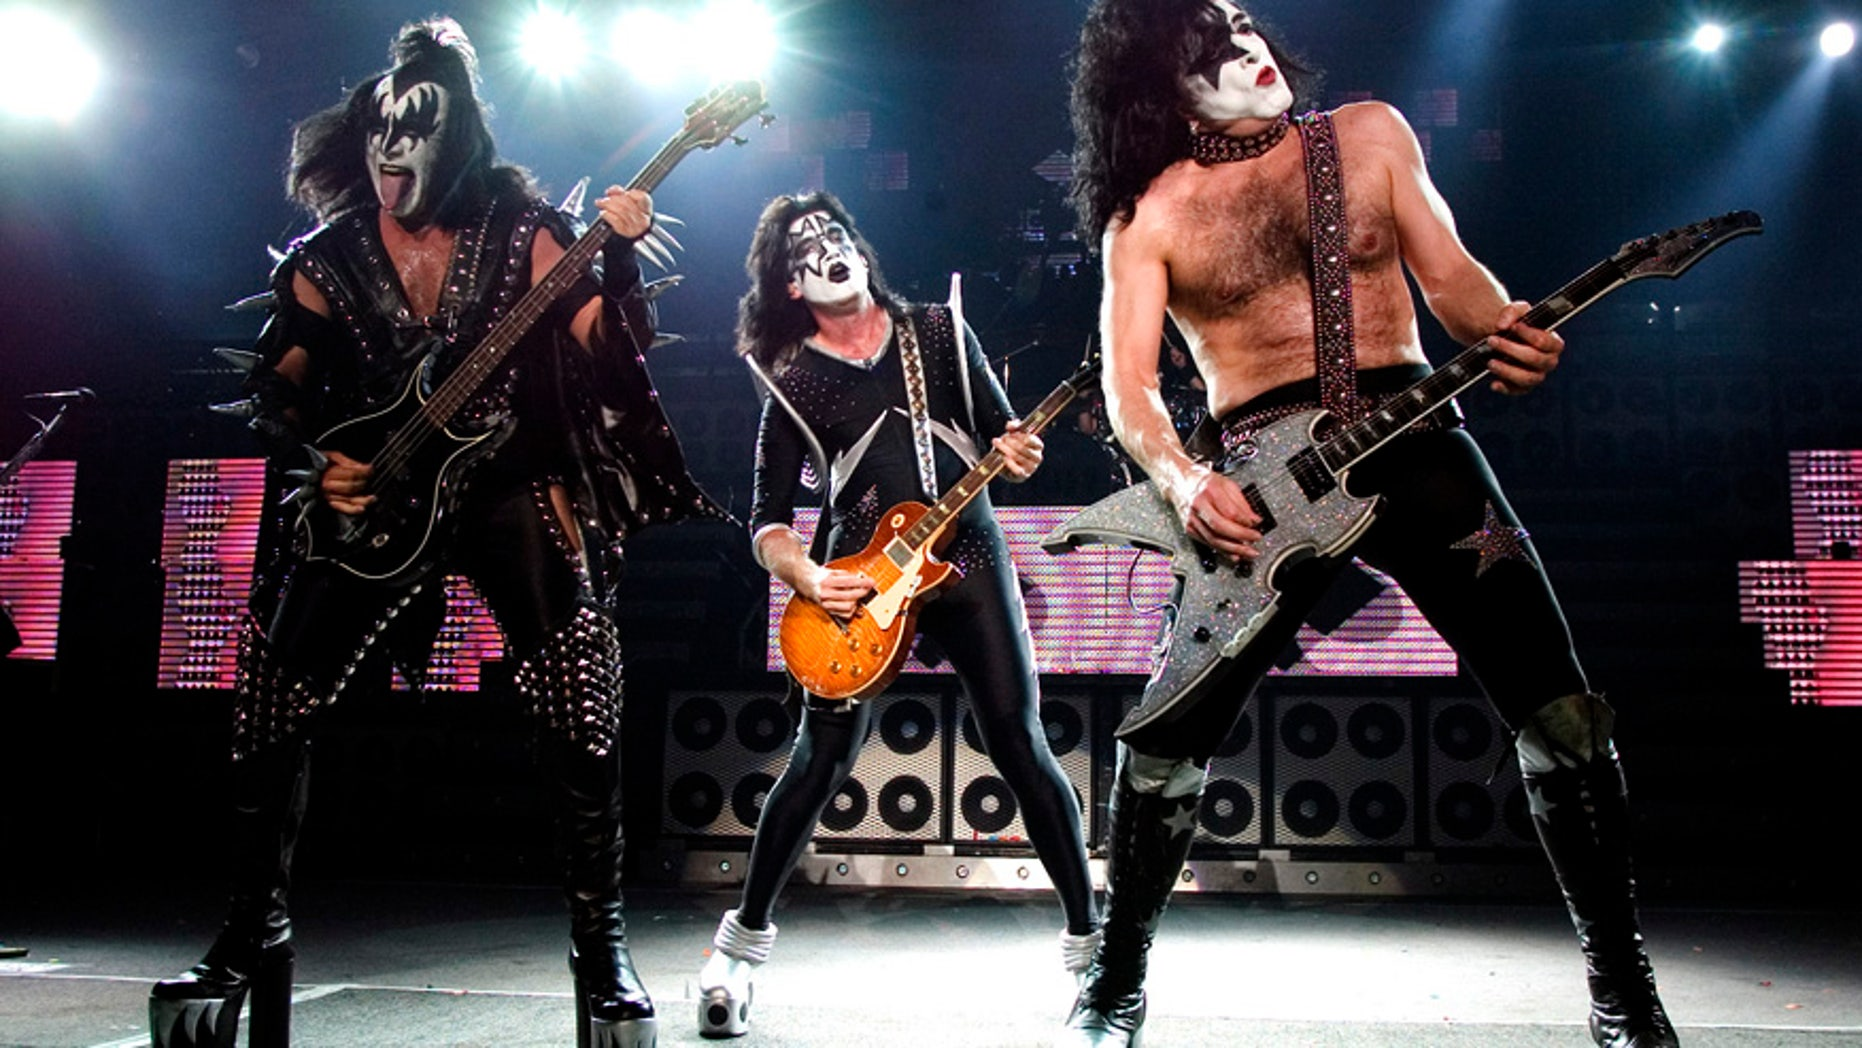 The rock band Kiss, from left, Gene Simmons, Tommy Thayer and Paul Stanley perform during their performance at the PNC Bank Arts Center in Holmdel, N.J. on Tuesday, July 20, 2004.